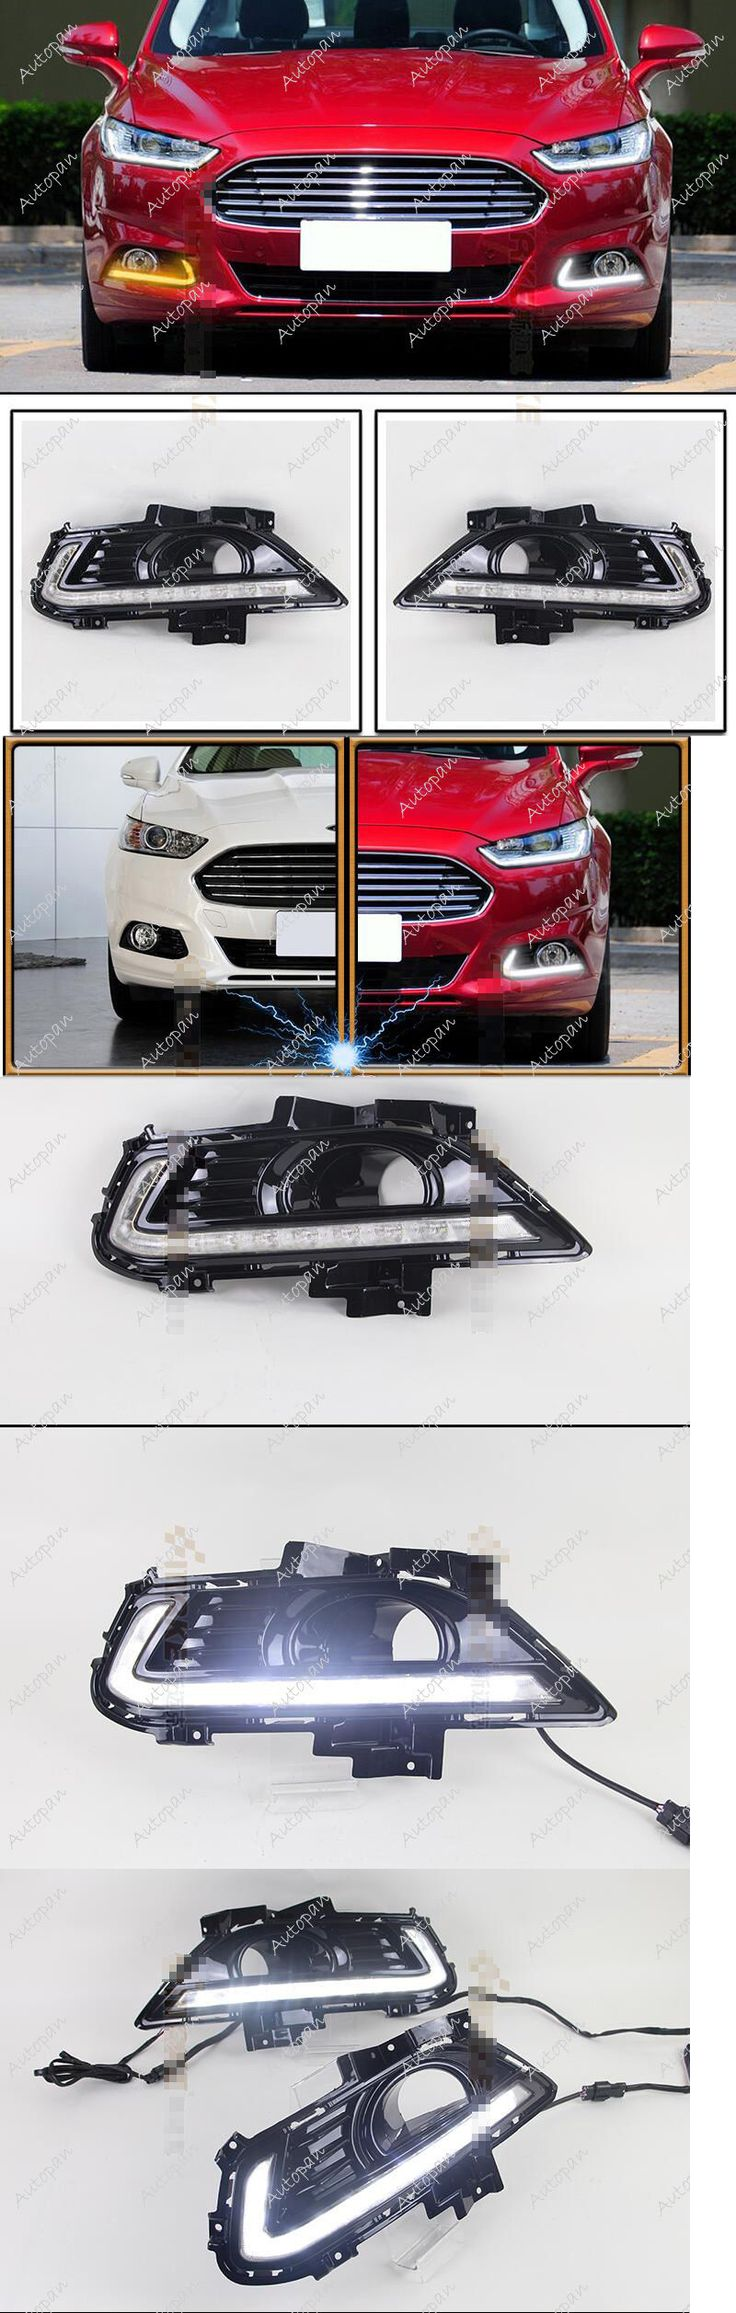 Motors parts and accessories 2x drl led daytime running light fog lamp yellow signal for ford fusionmotor